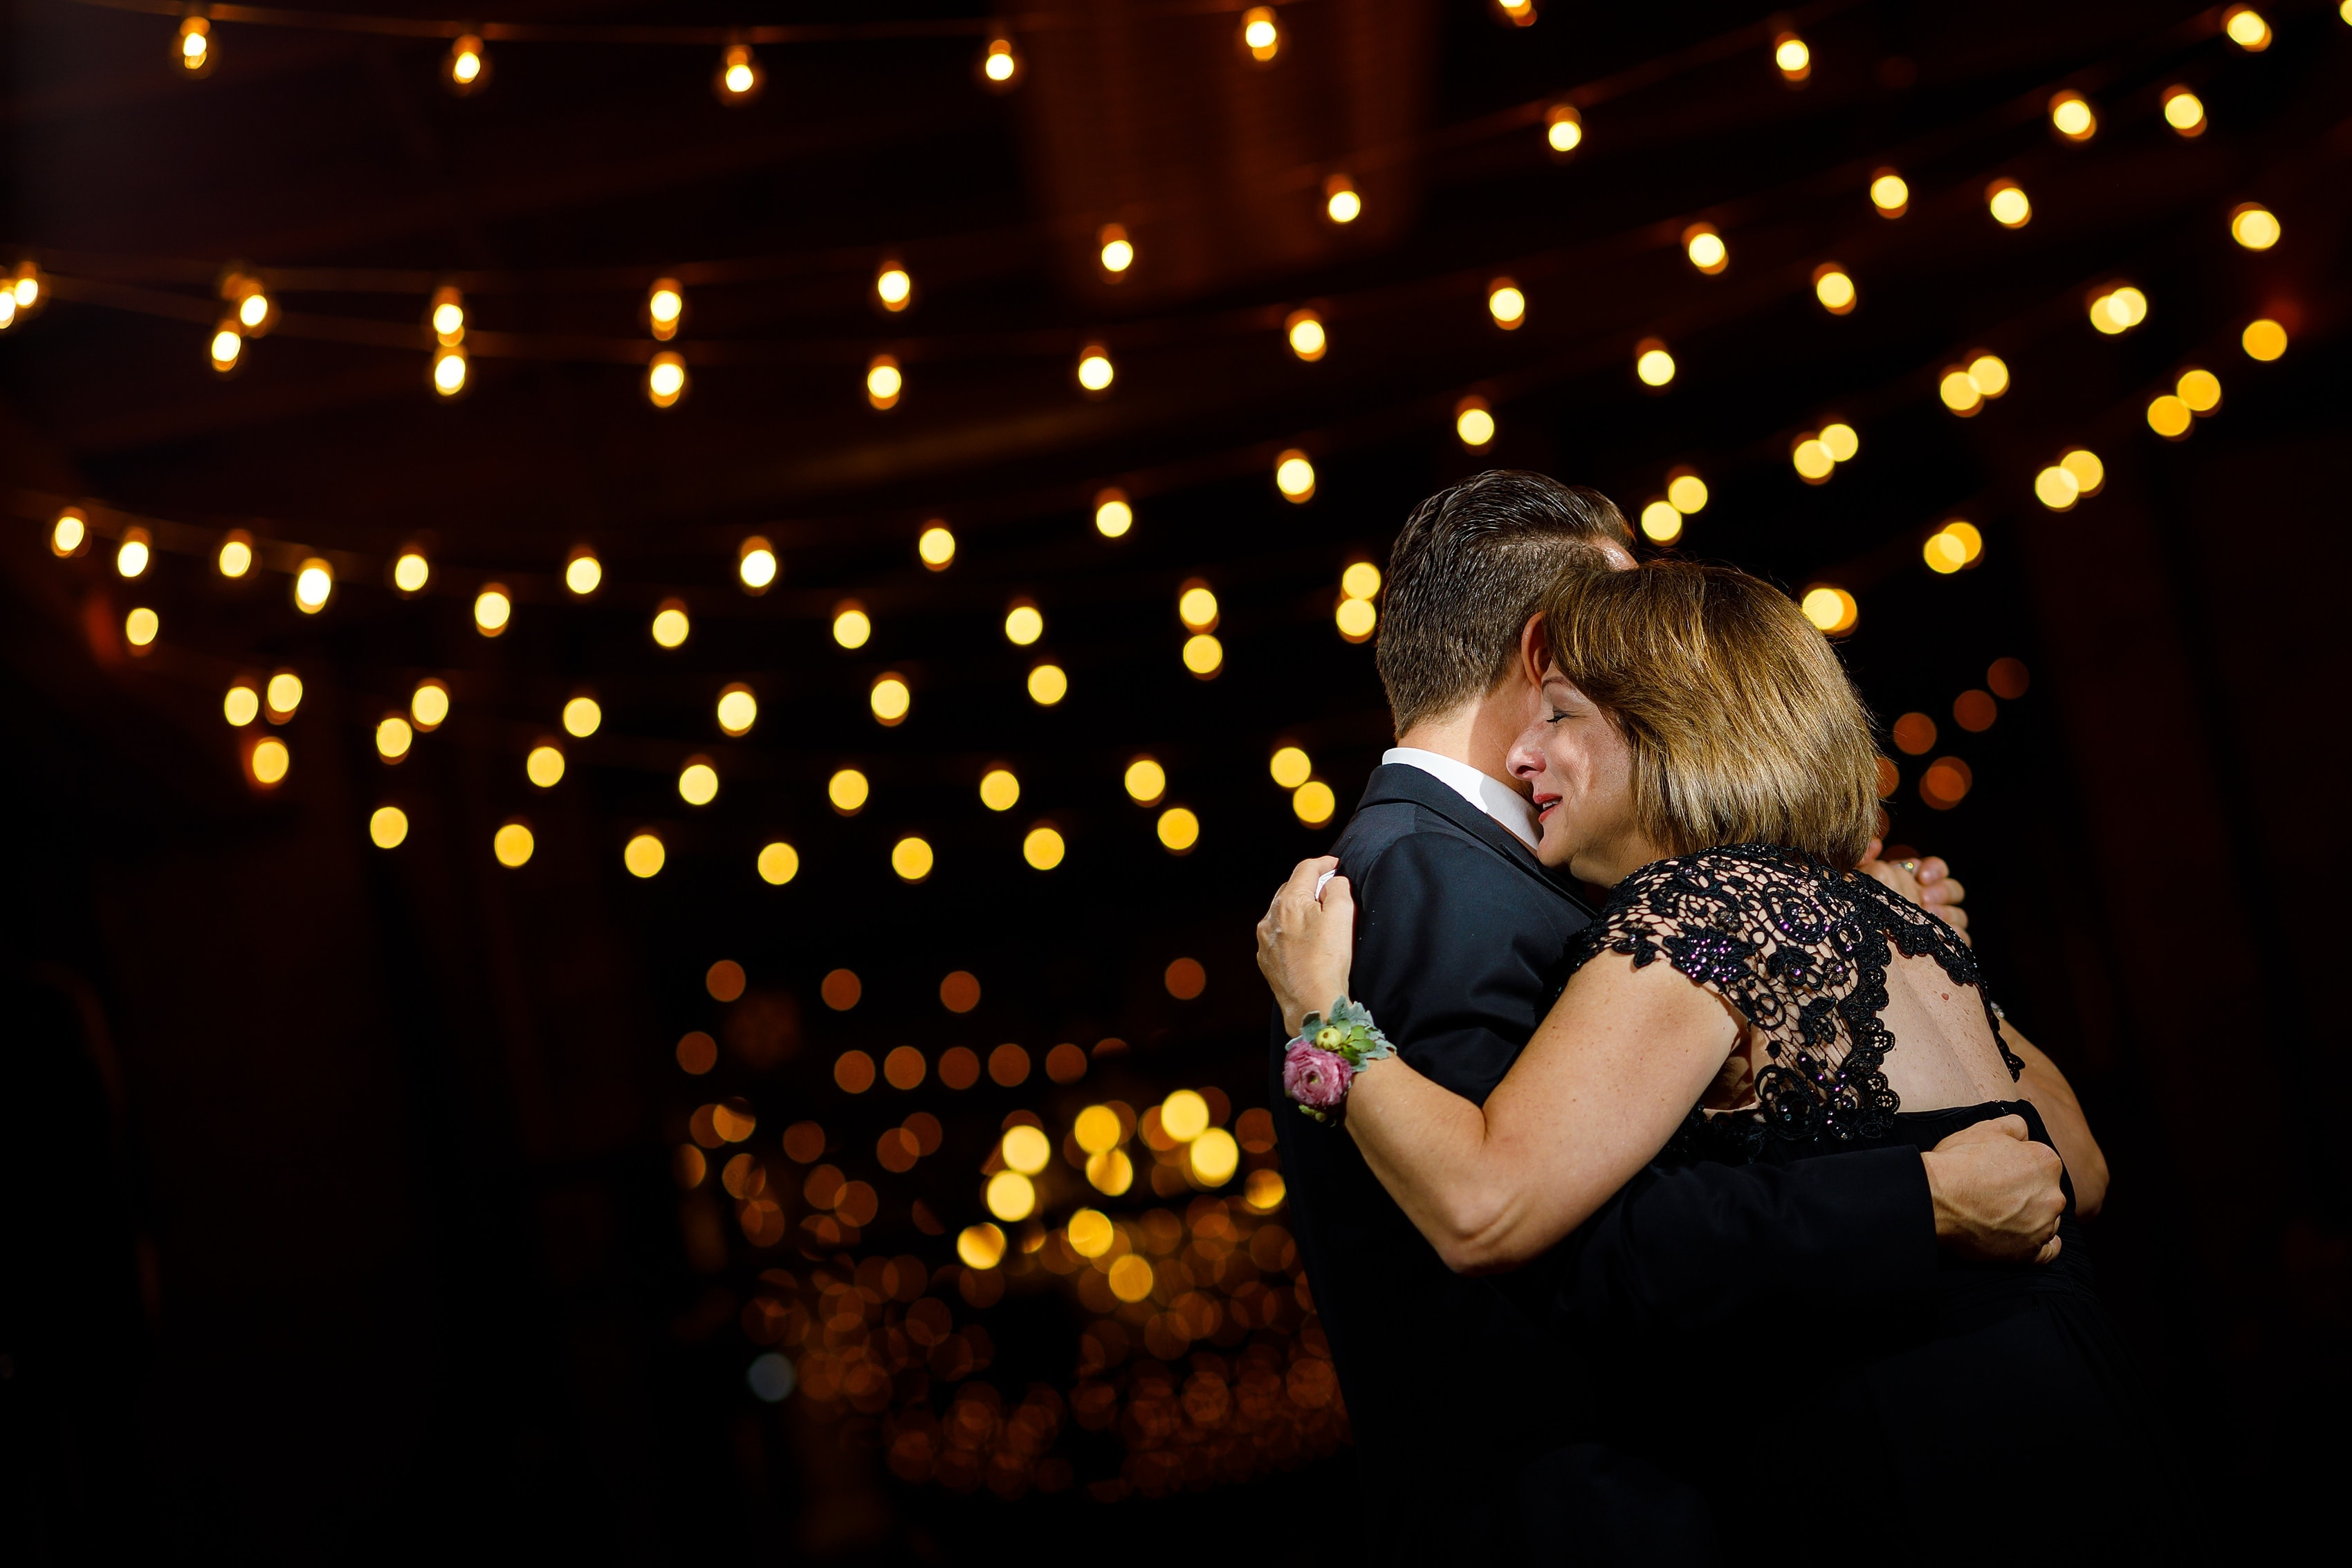 groom shares dance with mother during wedding reception at Bridgeport Art Center Sculpture Garden in Chicago